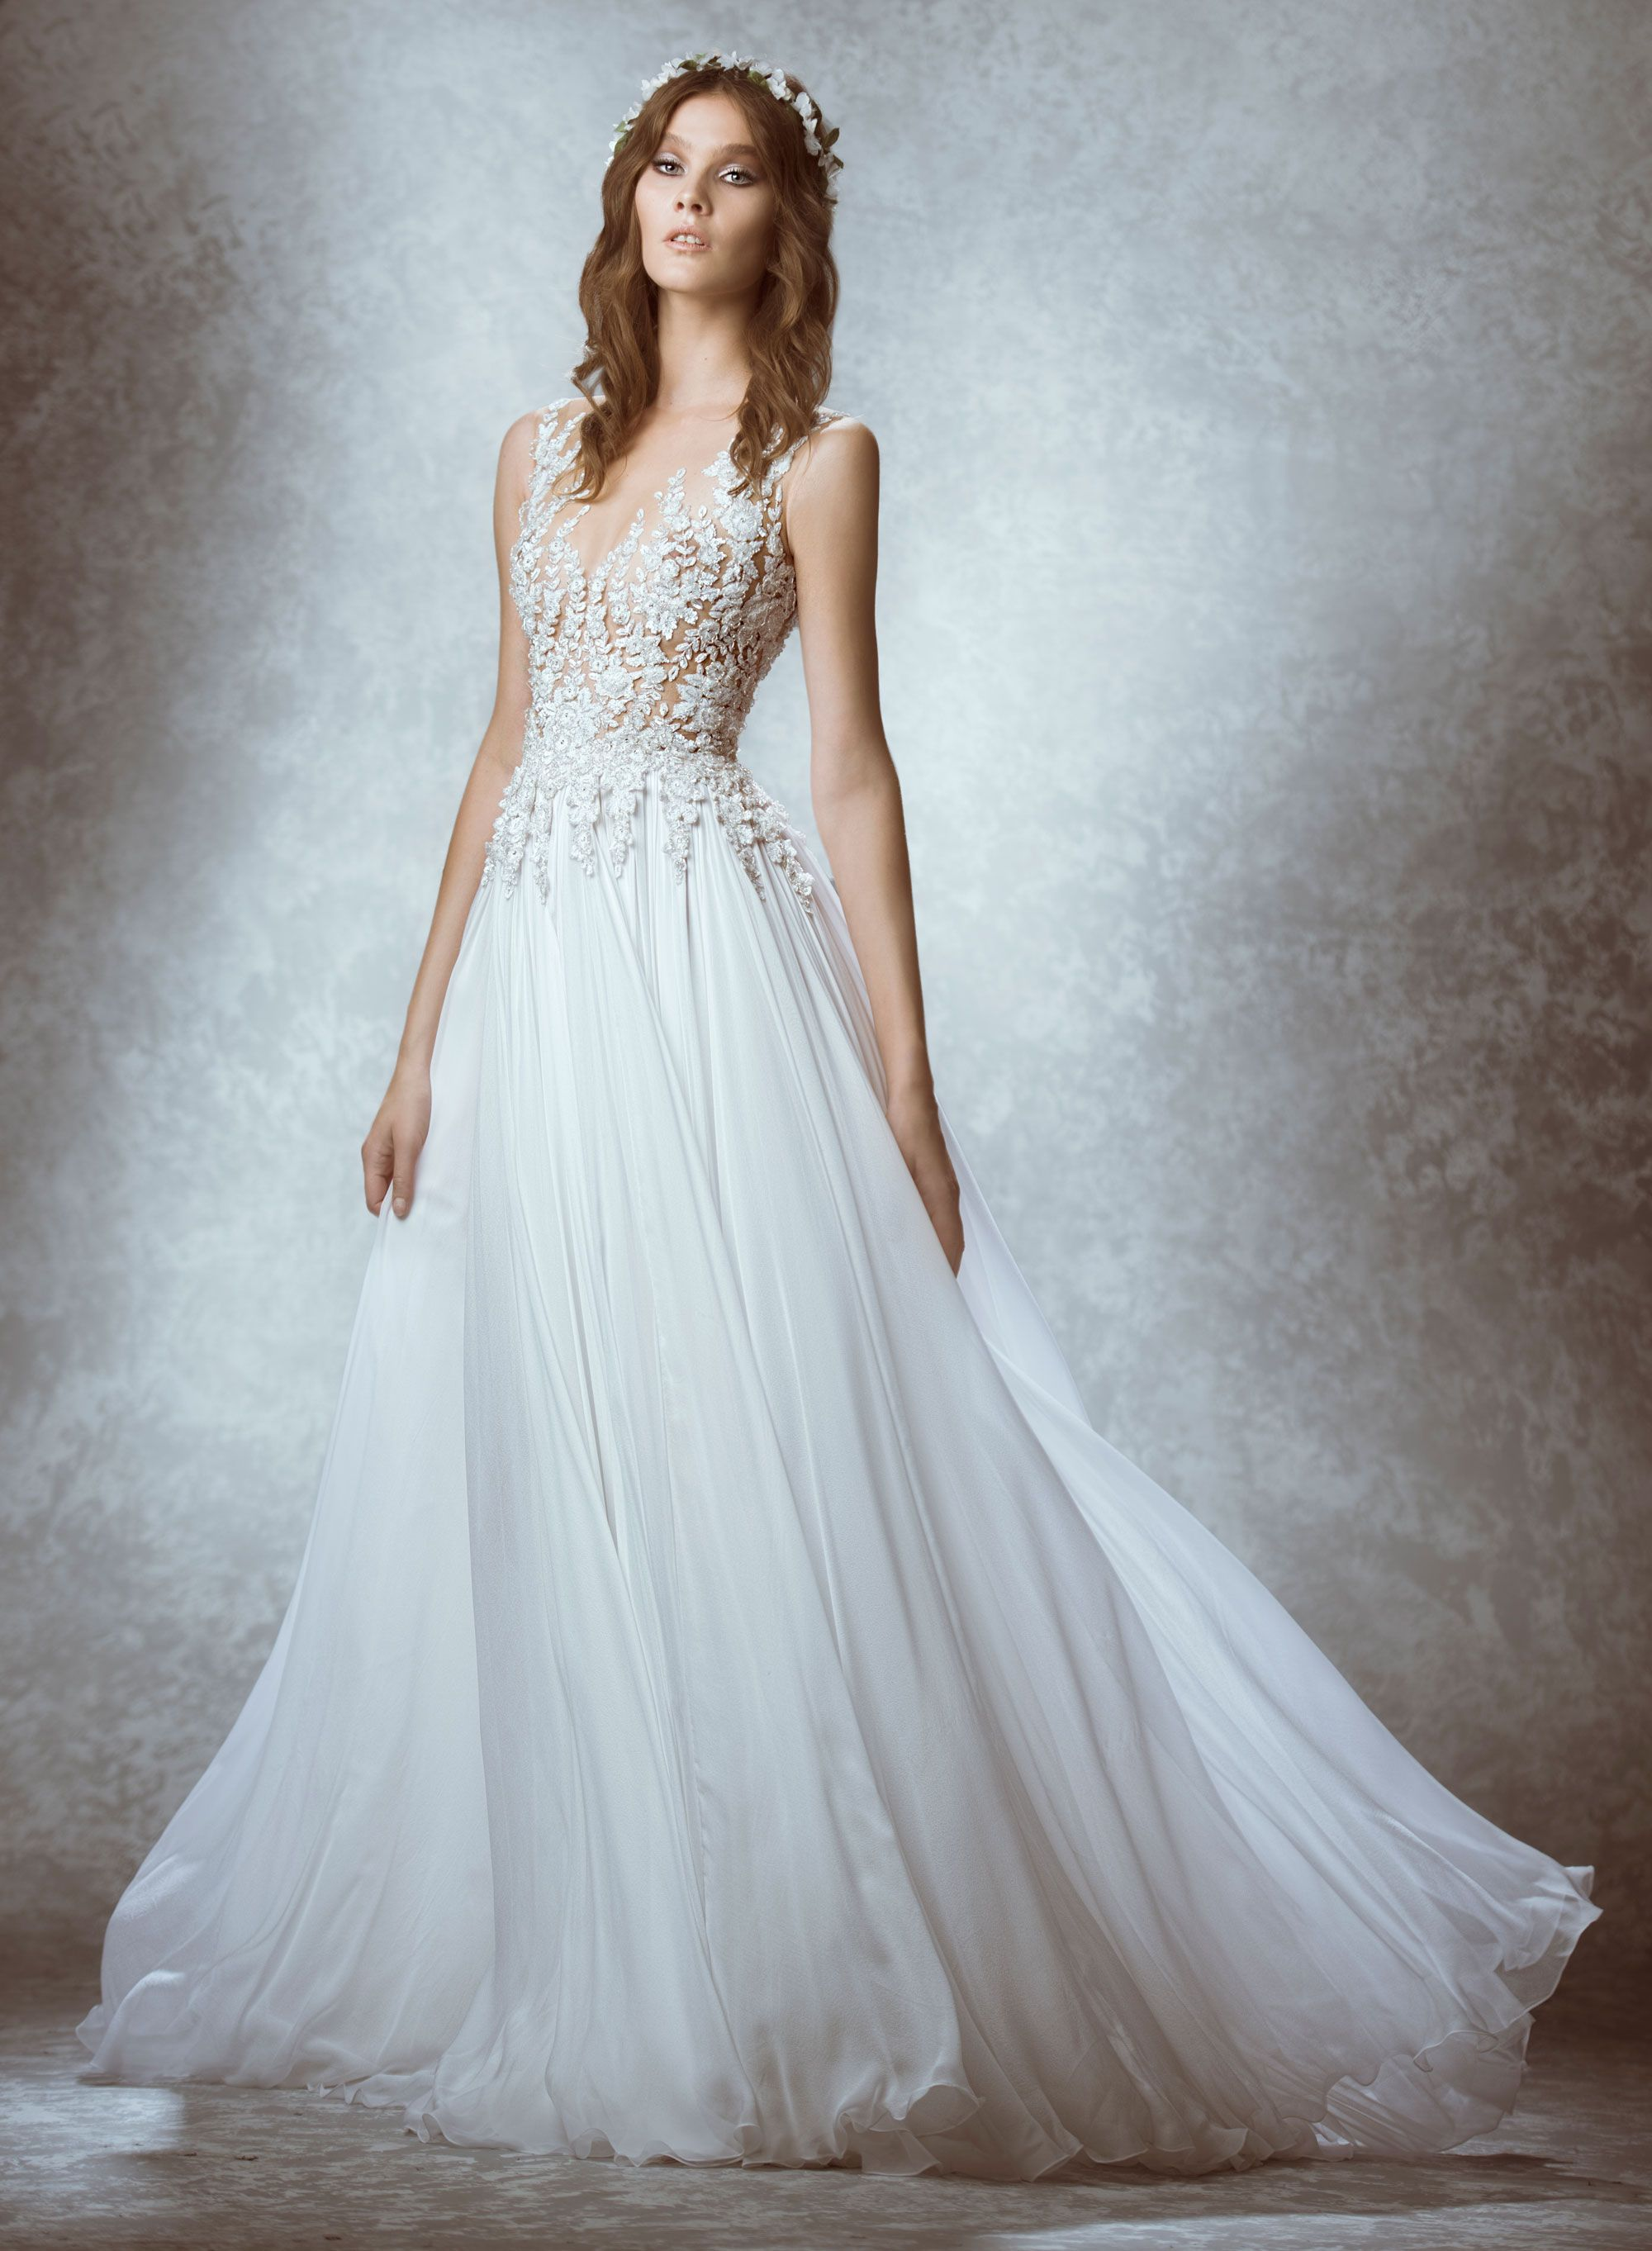 ZUHAIR MURAD Bridal Collection from Fall/Winter 2015. Love the flowy ...